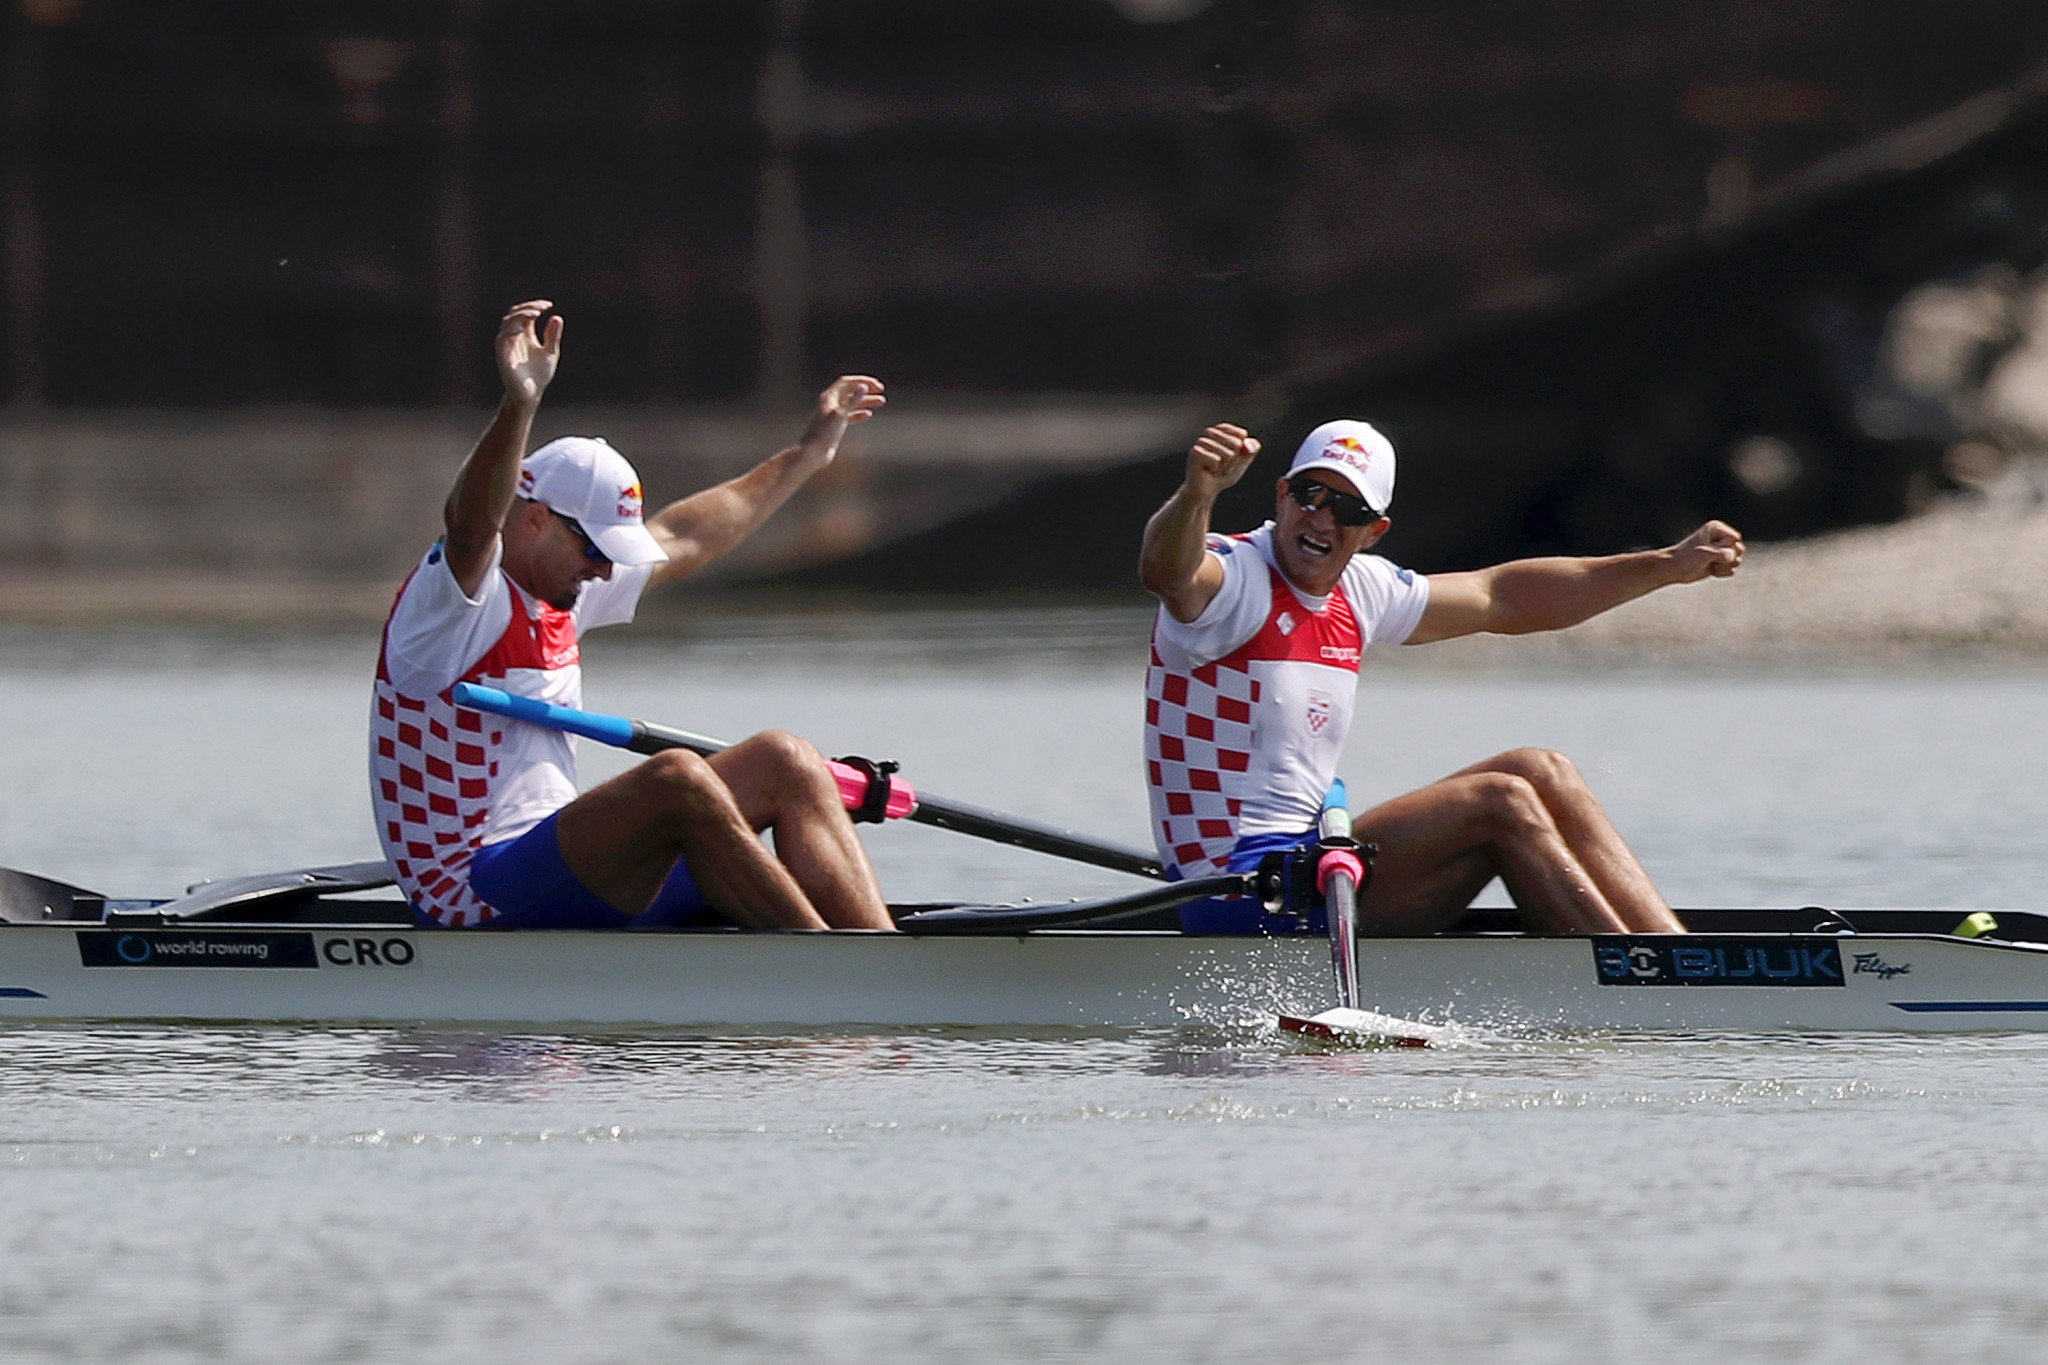 Brothers Martin and Valent Sinkovic were comfortable winners on home water in the men's pair at the year's first Rowing World Cup event in Zagreb ©Getty Images